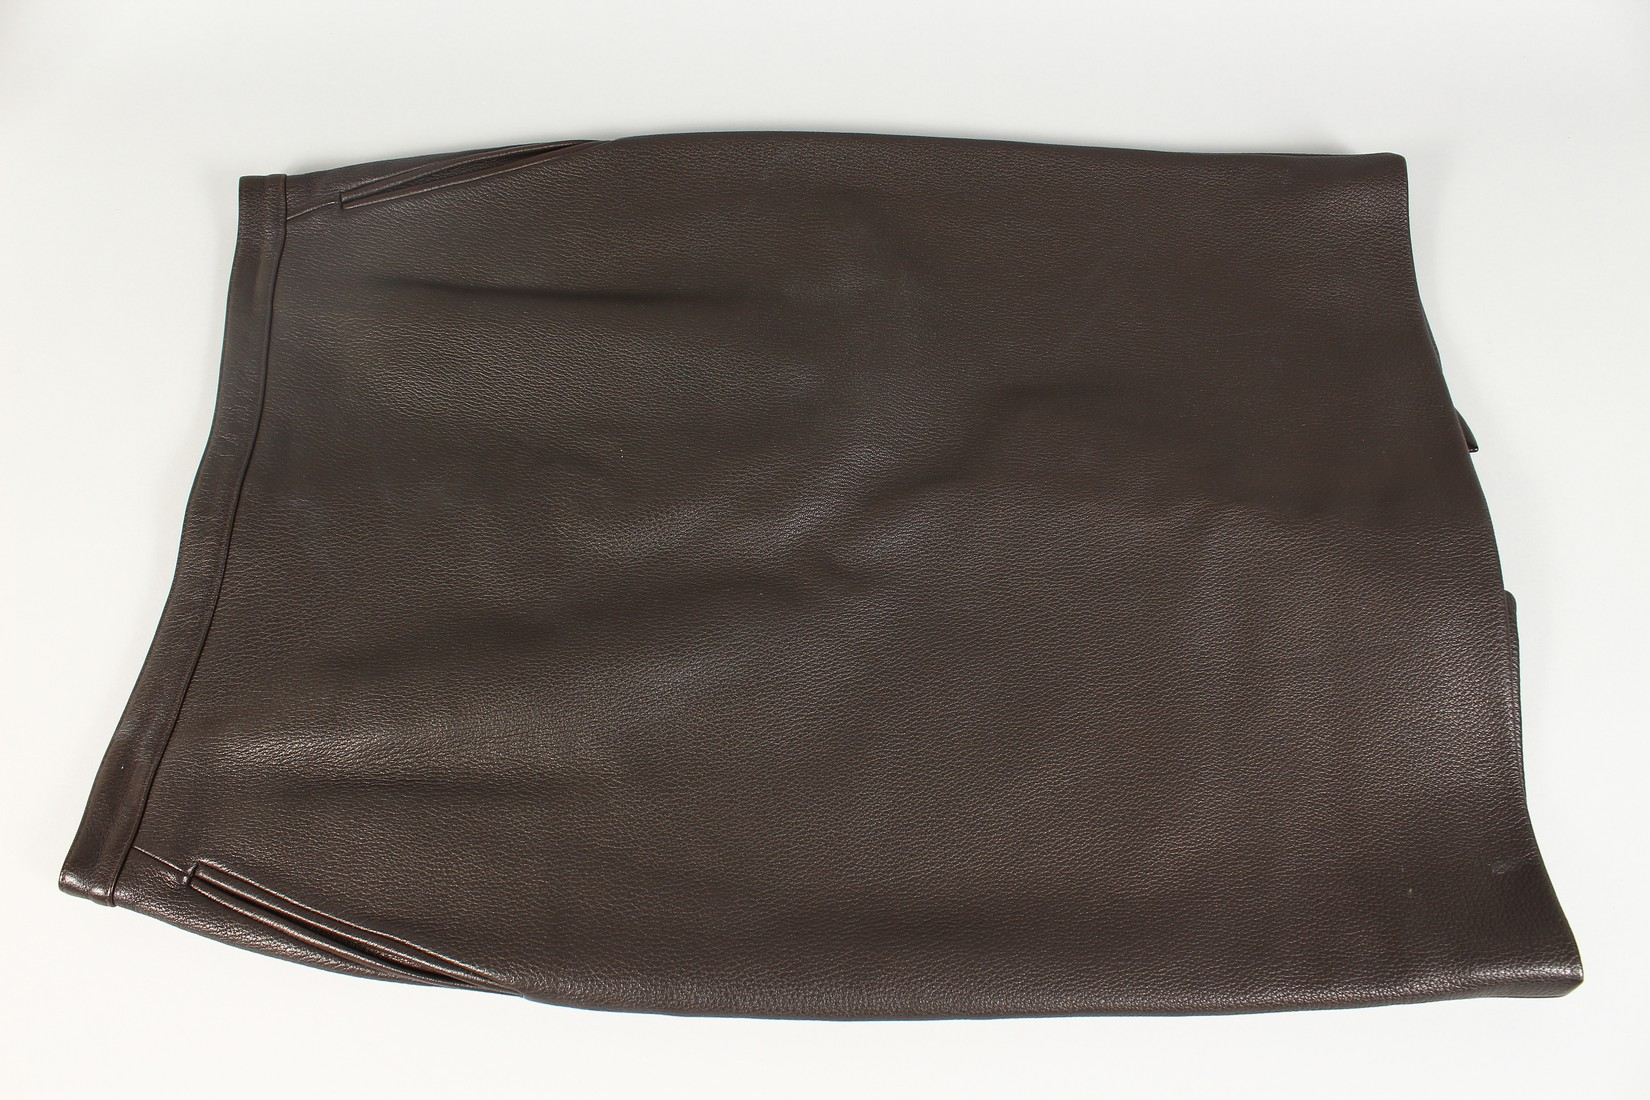 A HERMES LEATHER SKIRT, never worn. - Image 2 of 6